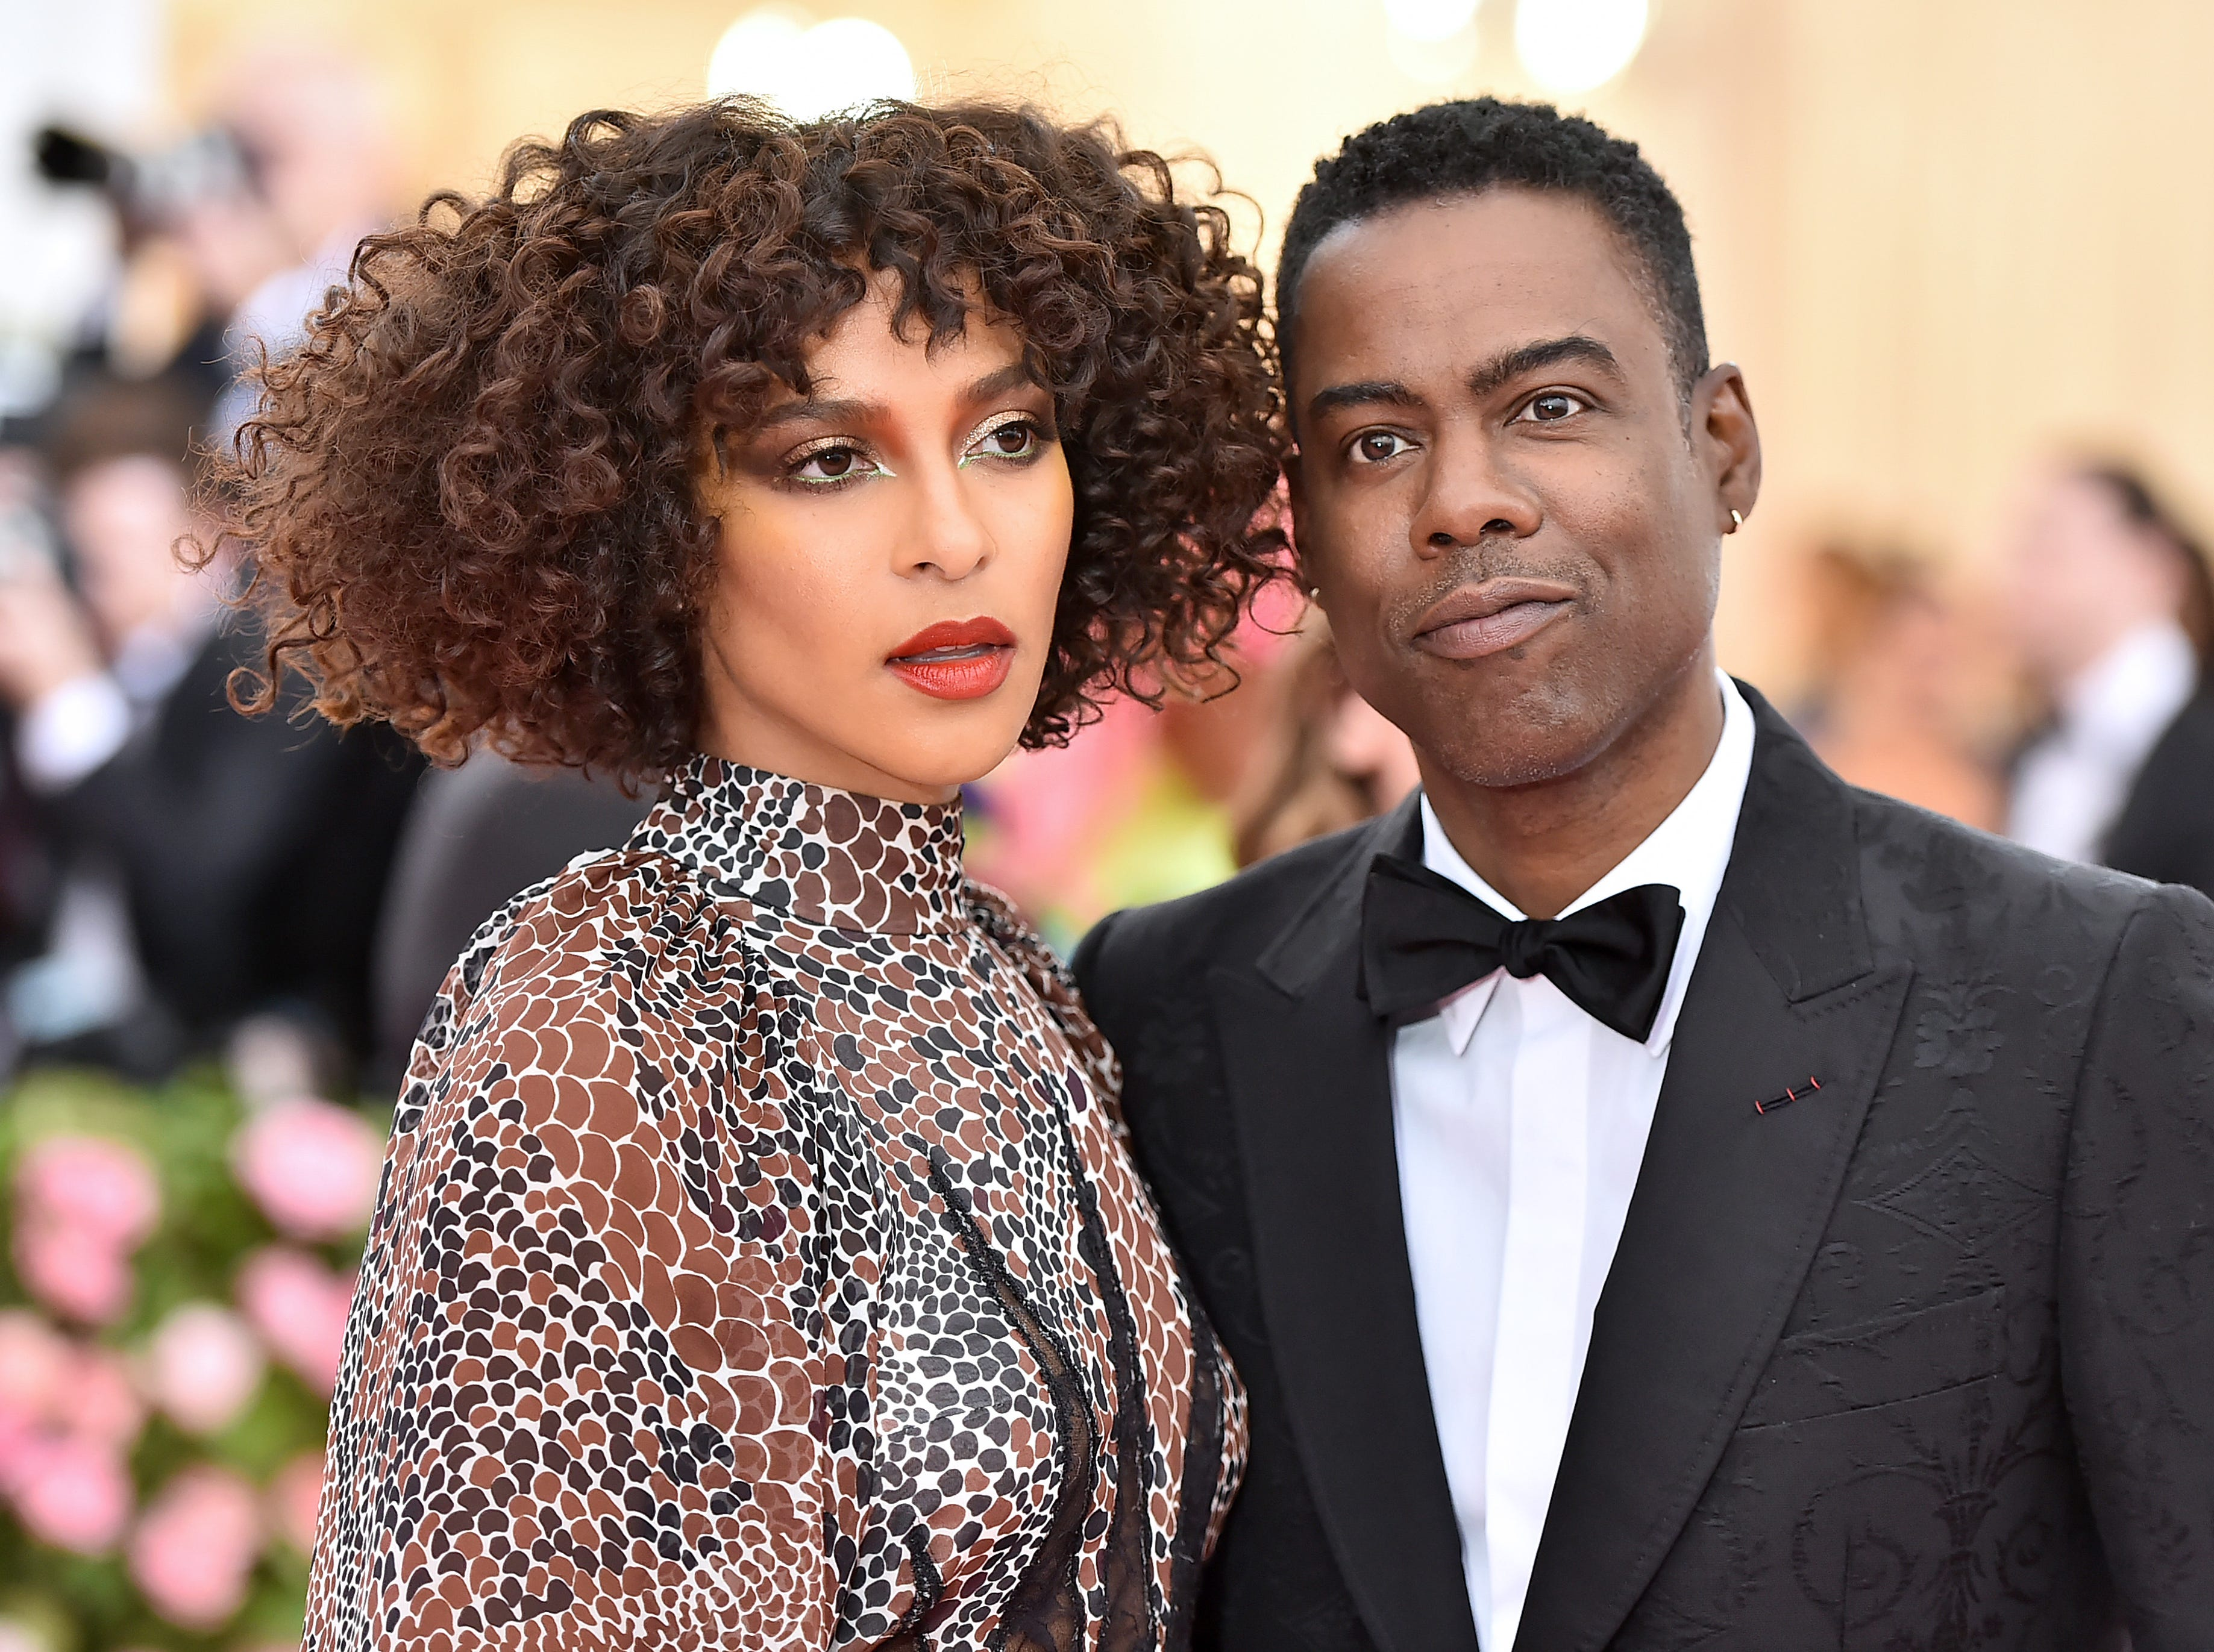 NEW YORK, NEW YORK - MAY 06: Megalyn Echikunwoke and Chris Rock attend The 2019 Met Gala Celebrating Camp: Notes on Fashion at Metropolitan Museum of Art on May 06, 2019 in New York City. (Photo by Theo Wargo/WireImage) ORG XMIT: 775333959 ORIG FILE ID: 1147424561